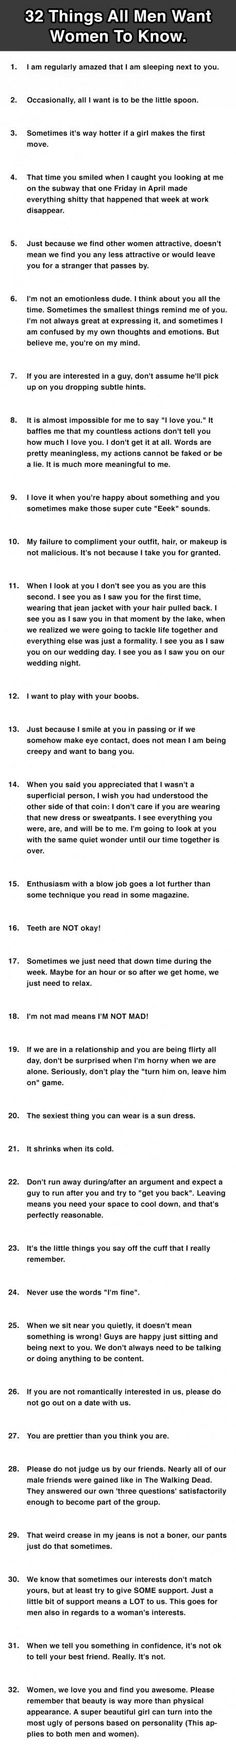 32 things men want women to know.